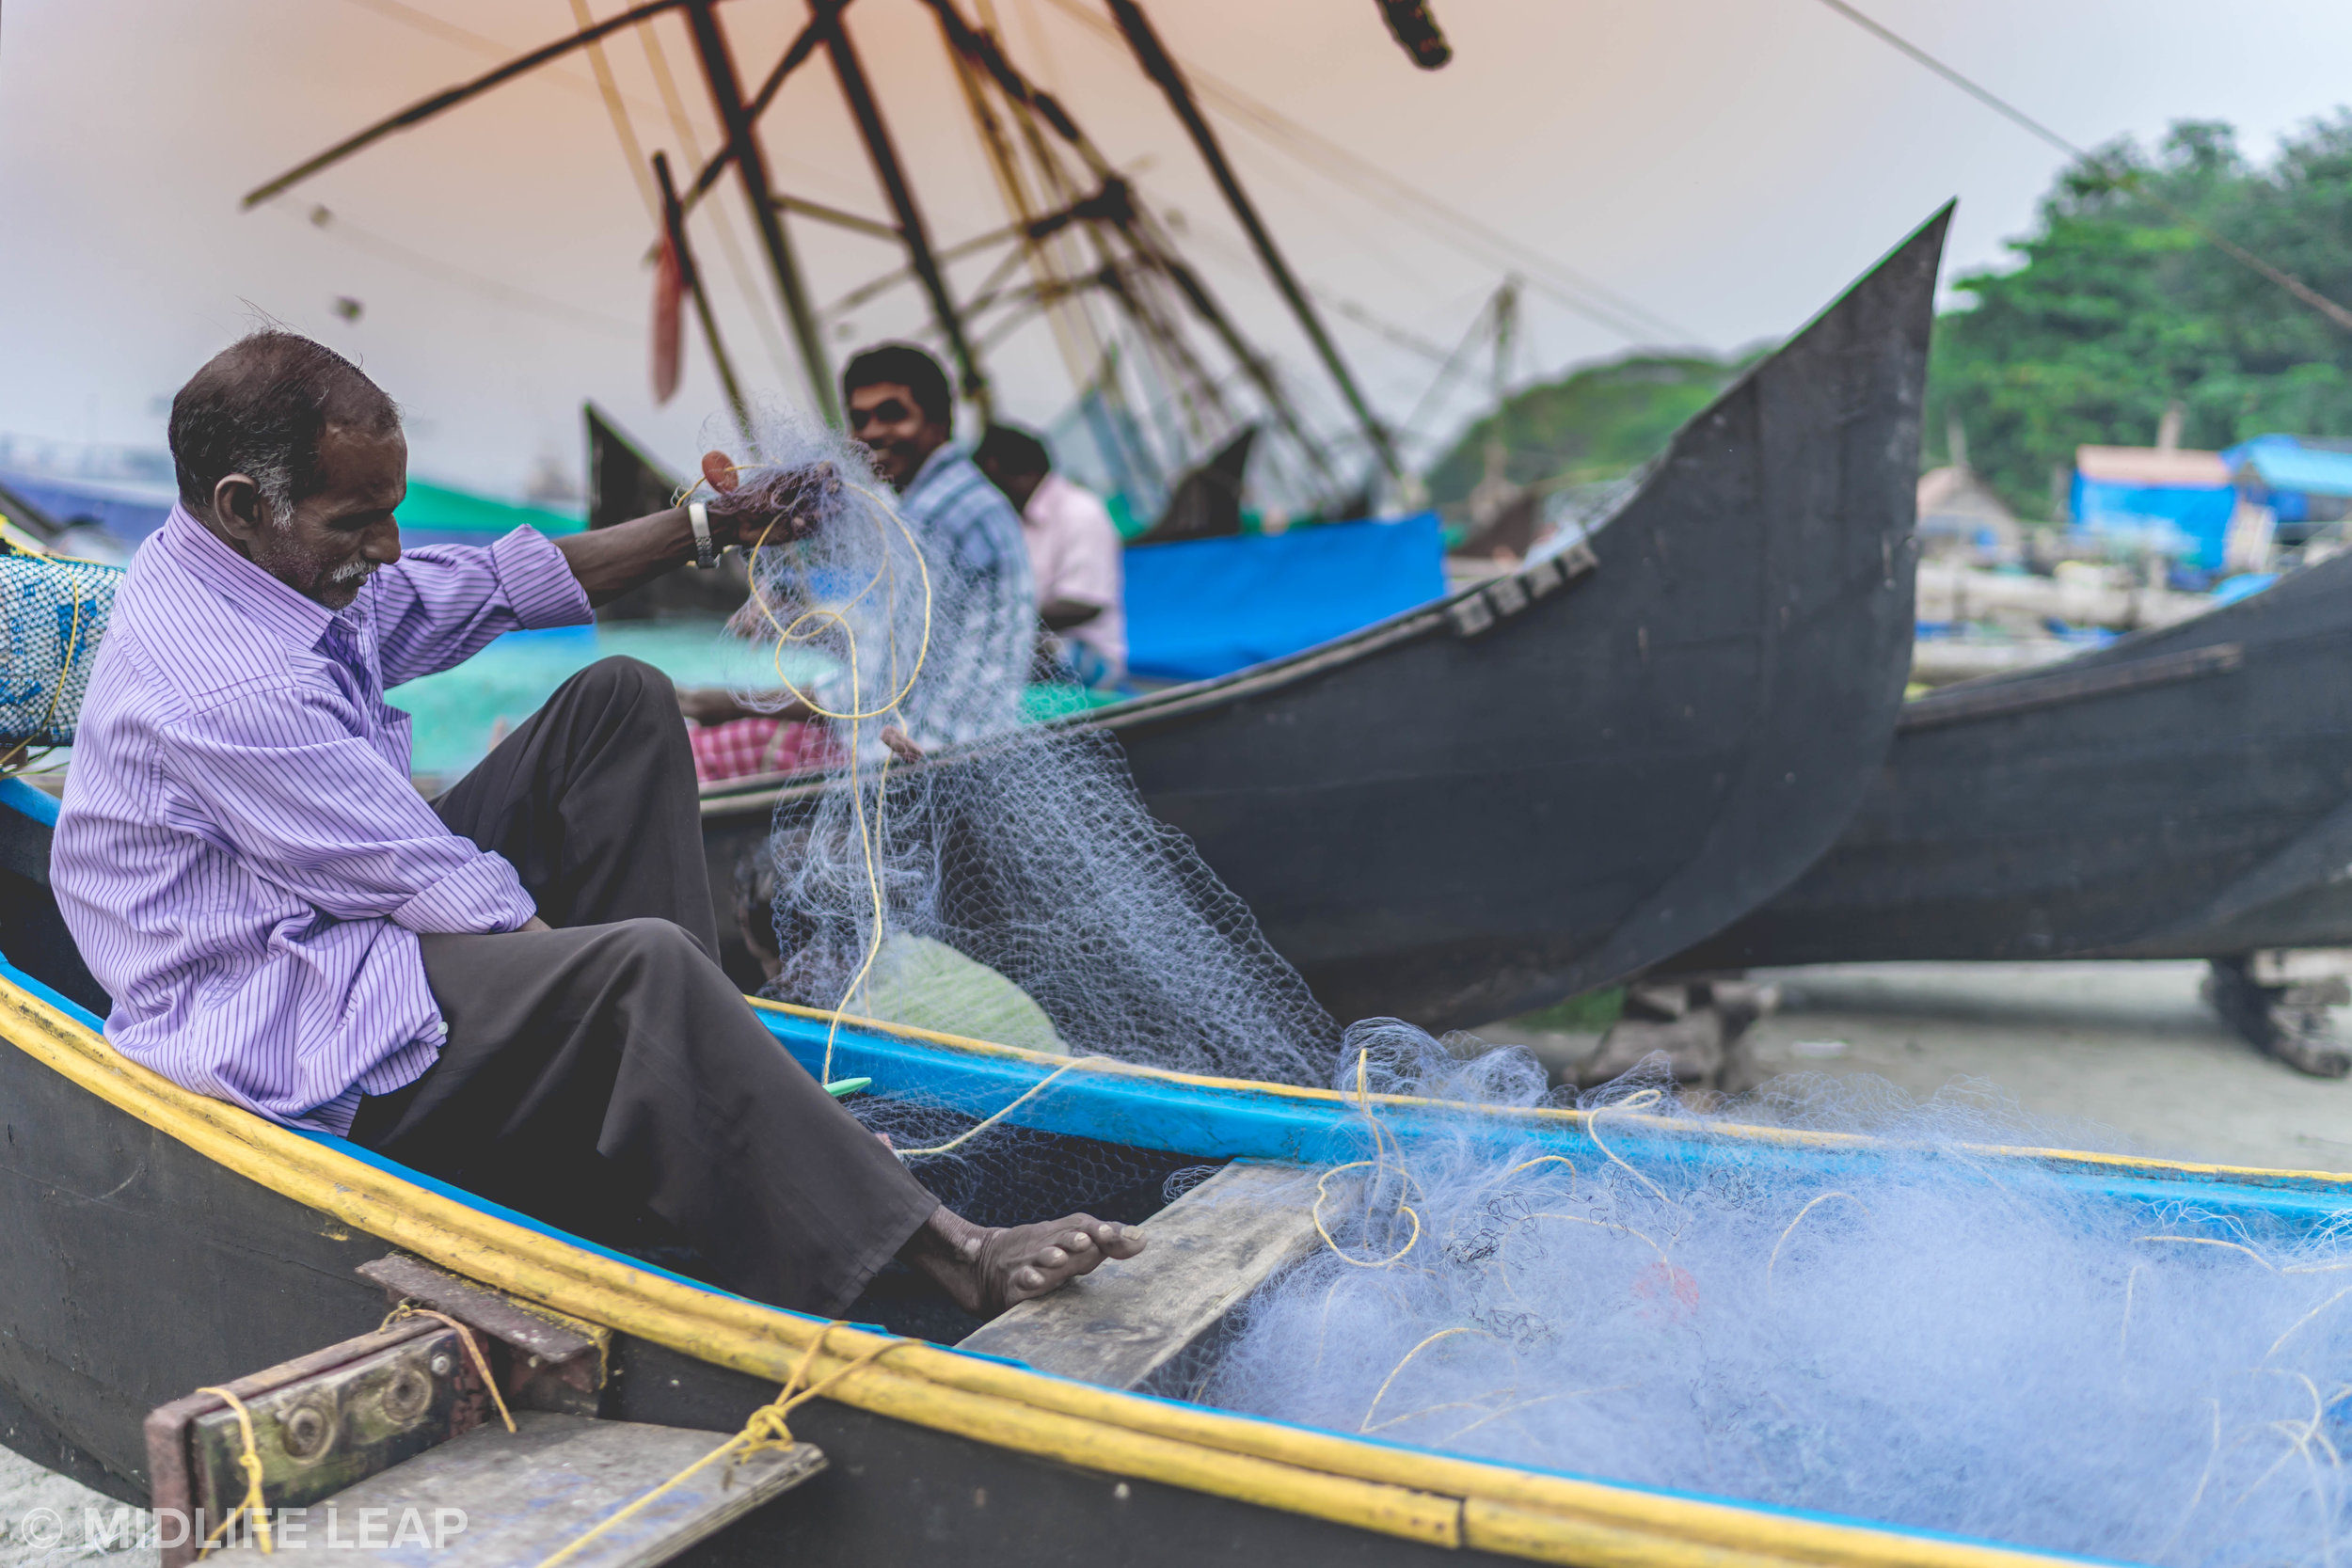 Kochi Fisherman: Up Close & Personal